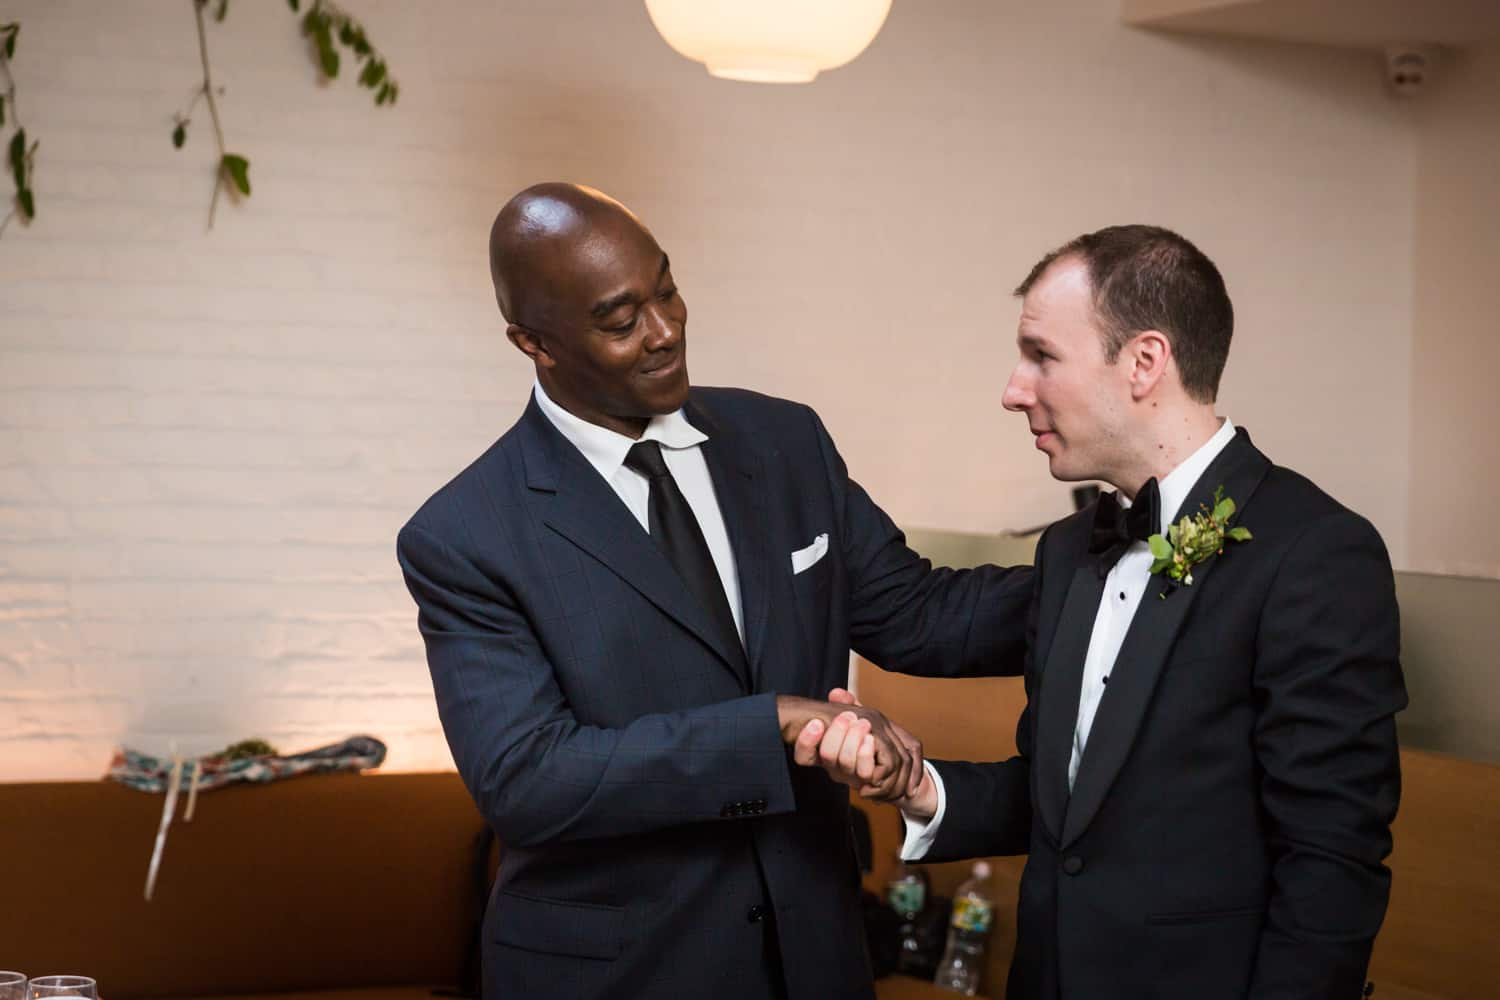 African American guest shaking hands with groom